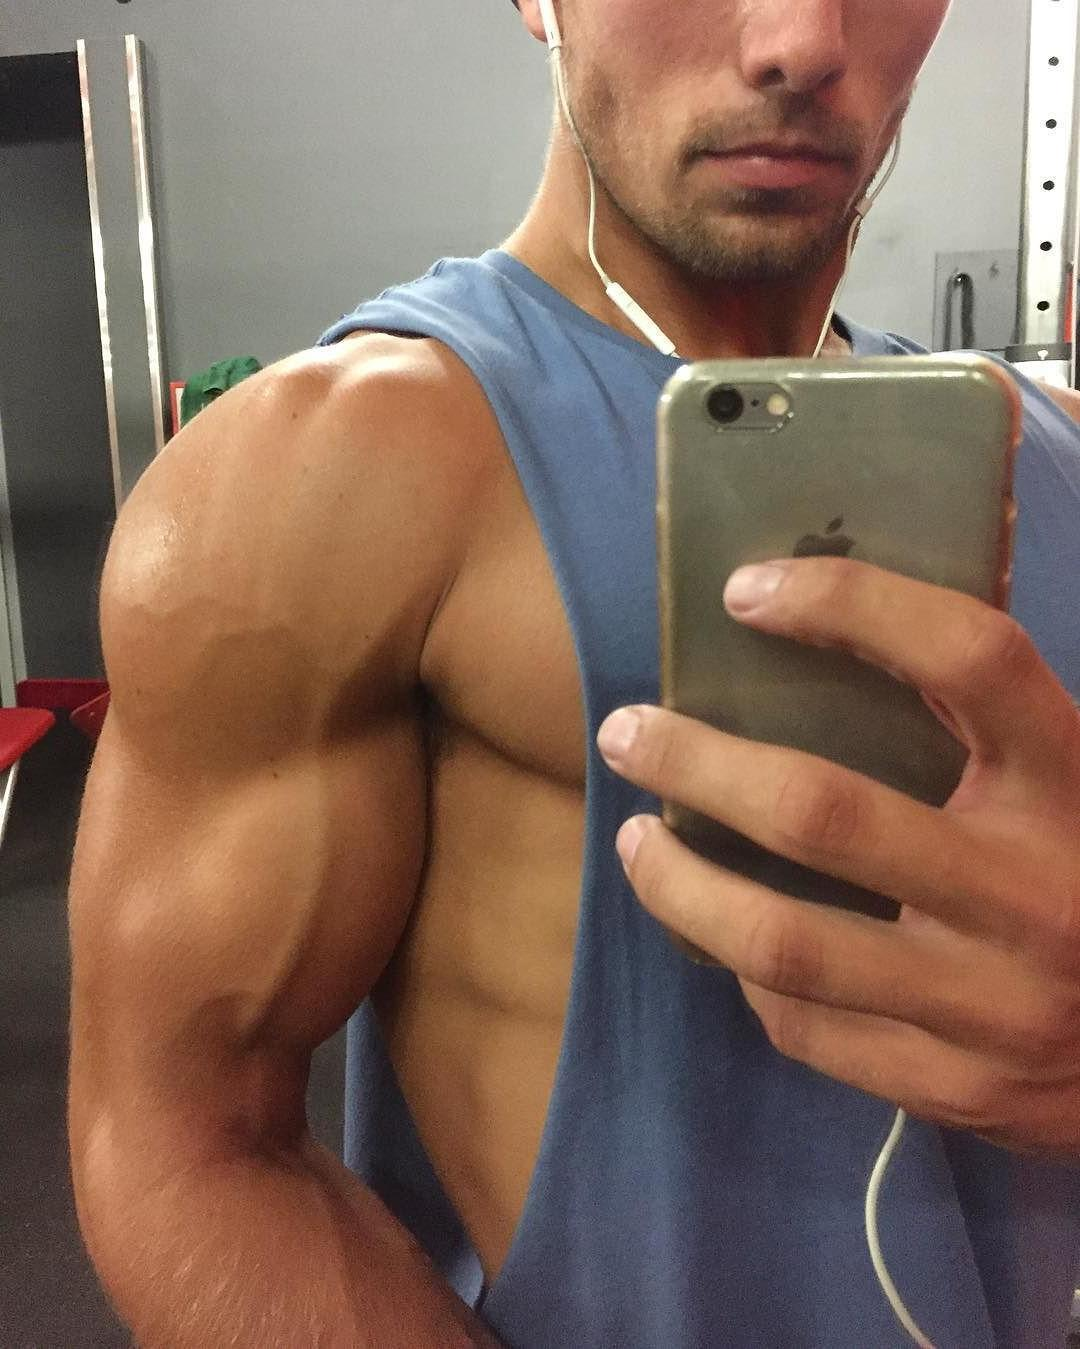 straight-baited-guys-selfies-hot-muscular-american-hunk-big-veiny-biceps-selfie